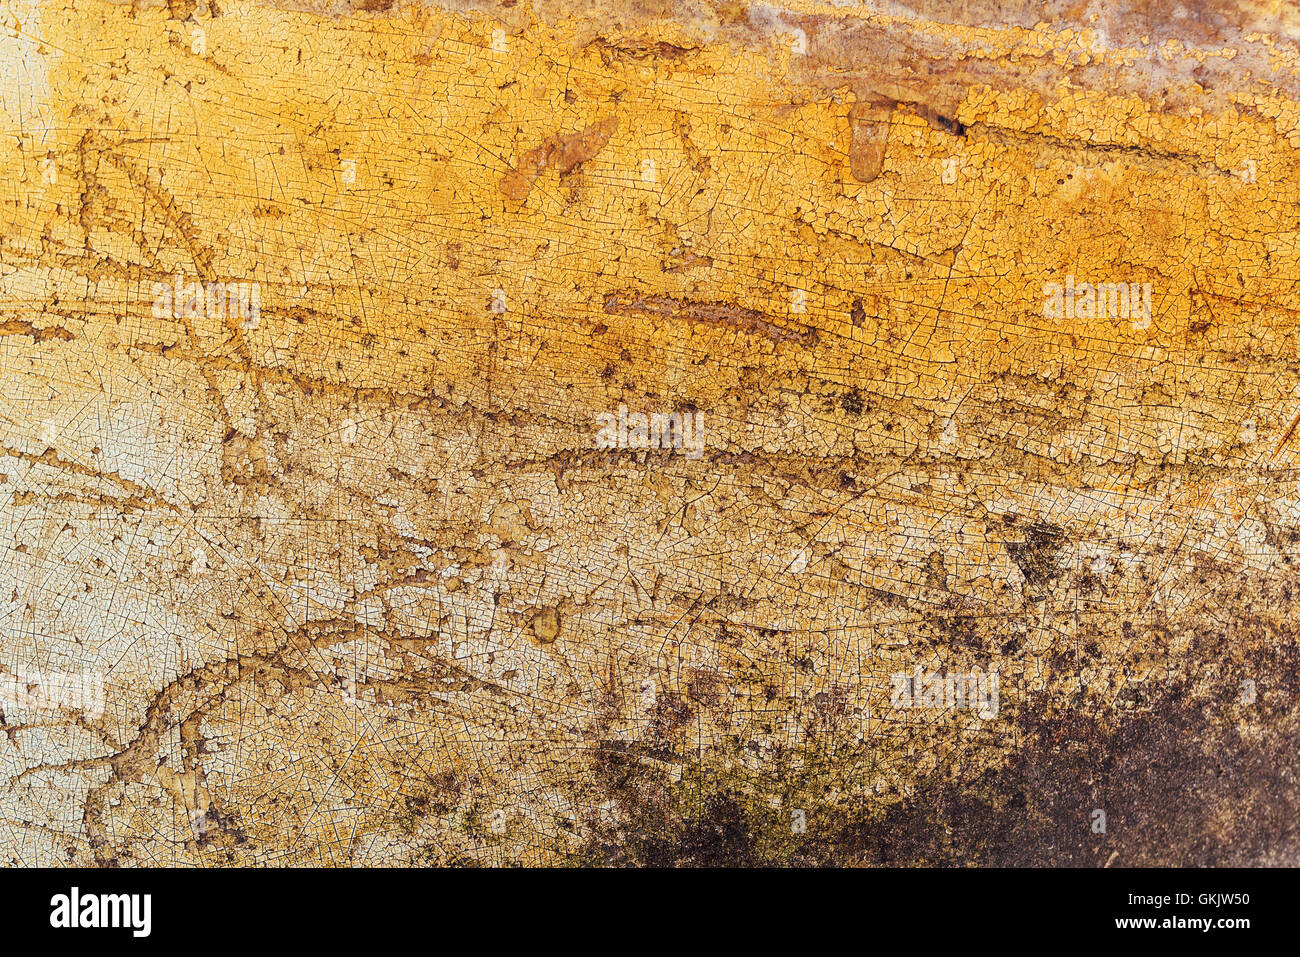 Obsolete grunge surface texture with scratches and stains - Stock Image